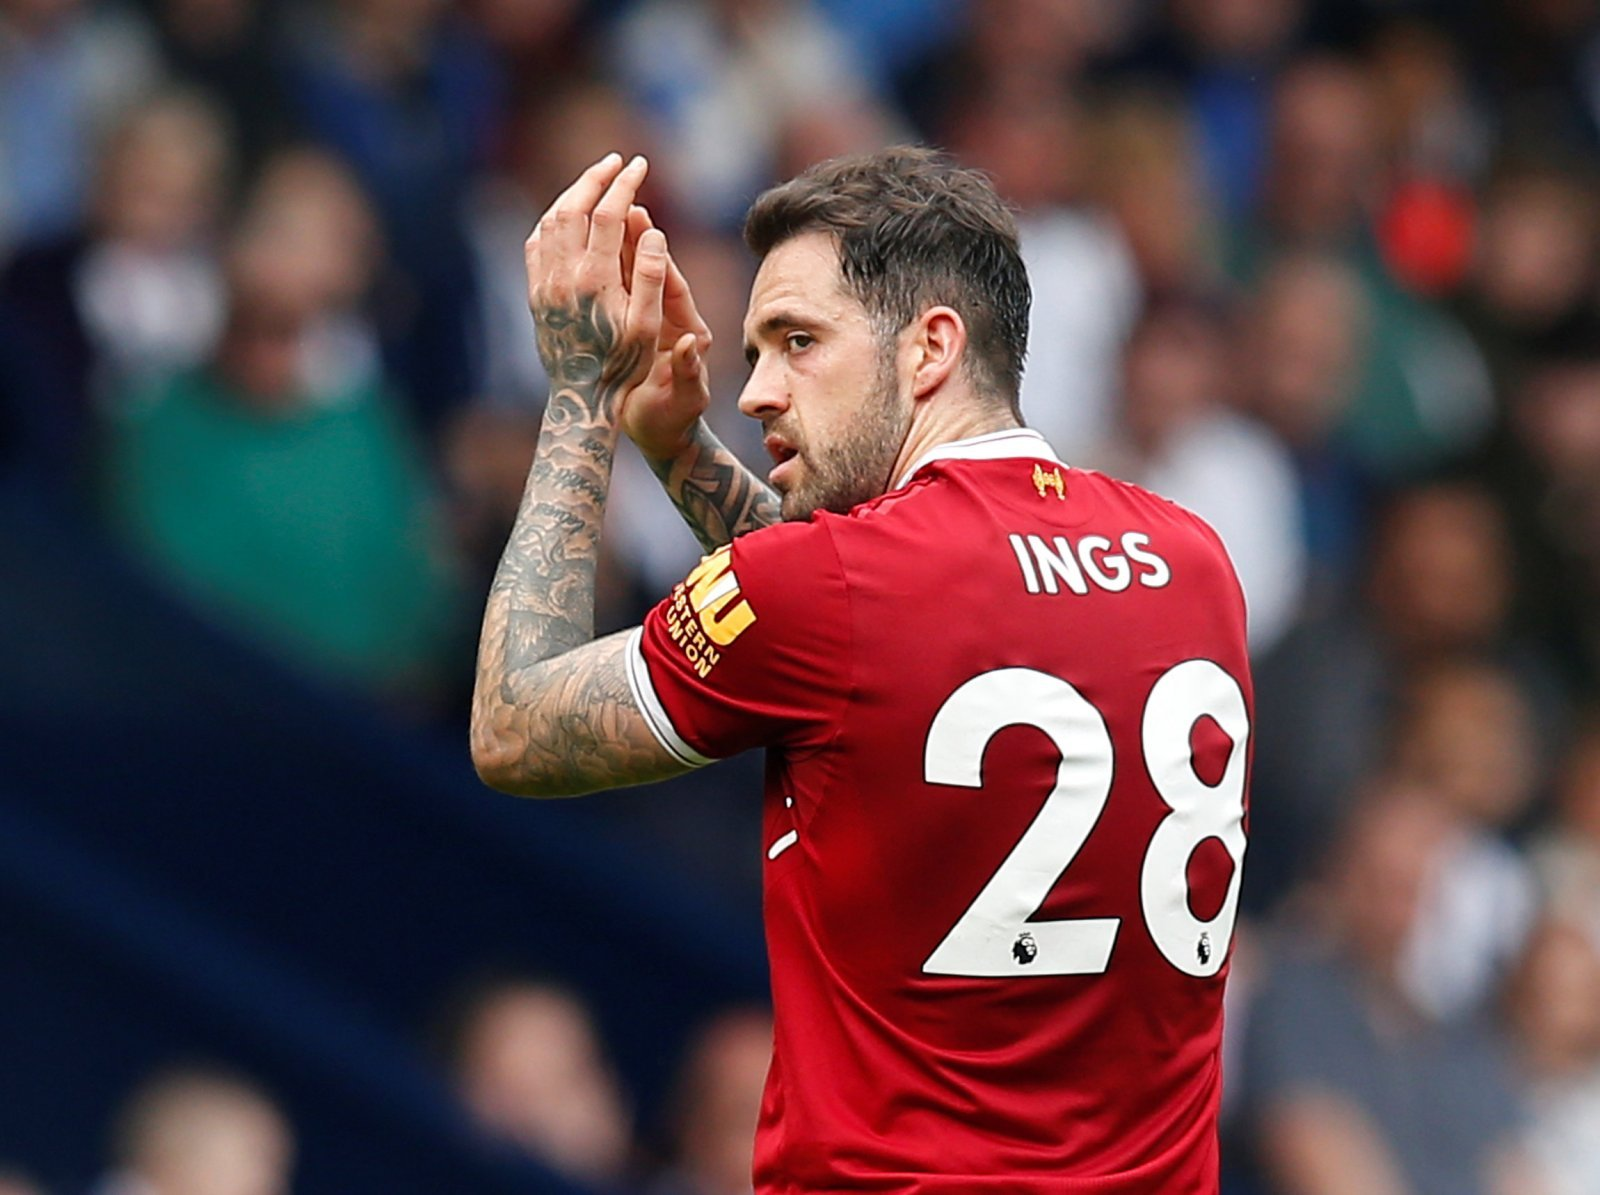 Danny Ings receiving interest from four Premier League clubs